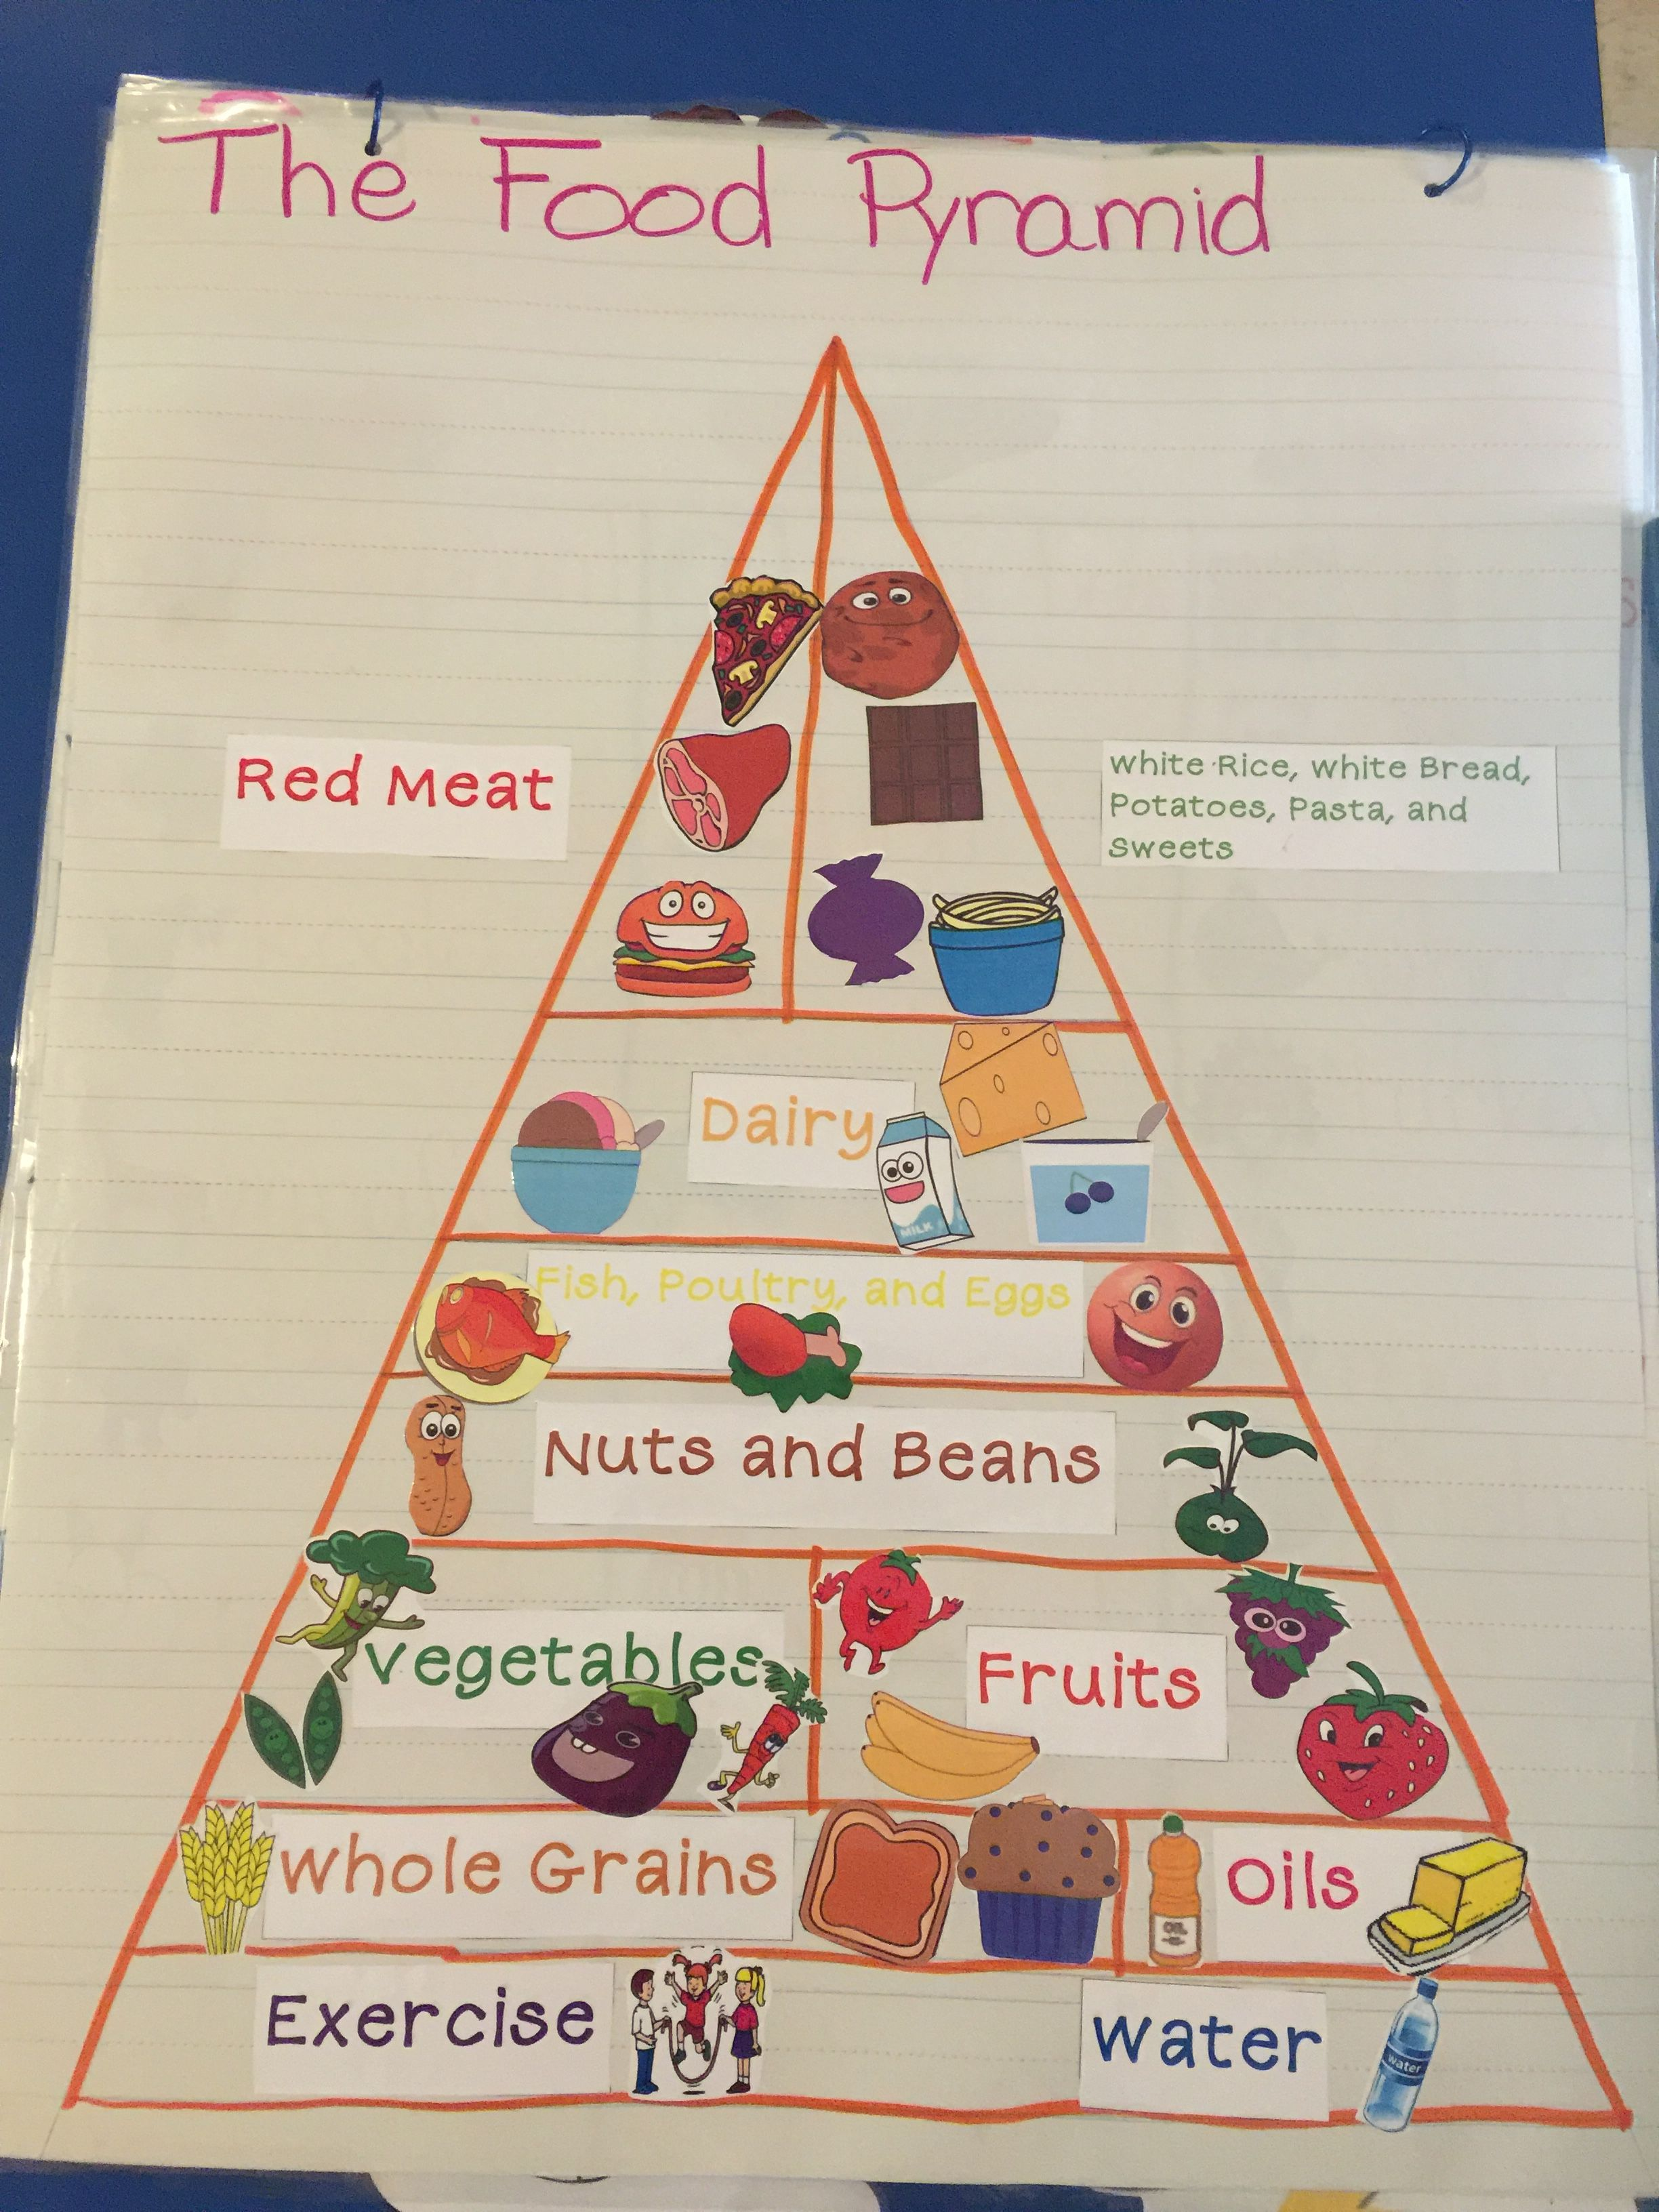 Food Pyramid Anchor Chart My Students Helped To Create This One After Our Theme On Healthy Eating And Good Foods